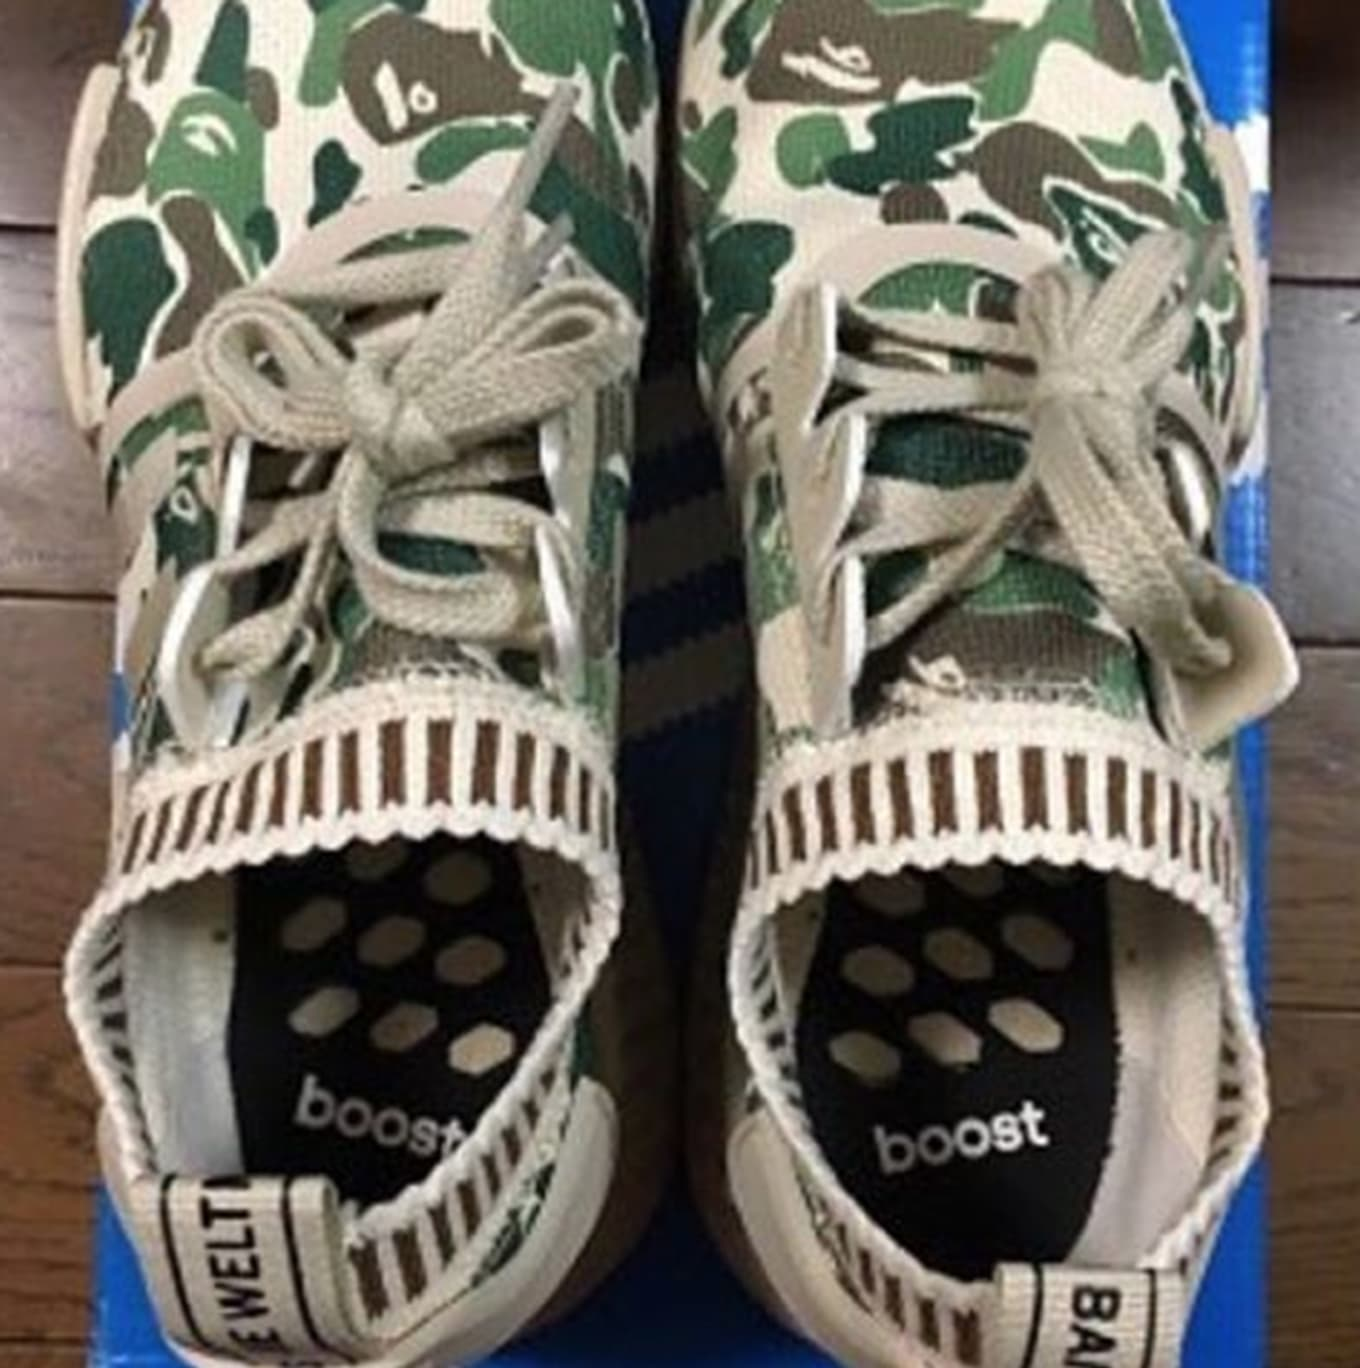 c402f006fb715 adidas NMD R1. Images via solestreetsneakerco. Images have leaked of a  supposed Bape x adidas NMD collaboration featuring the ...